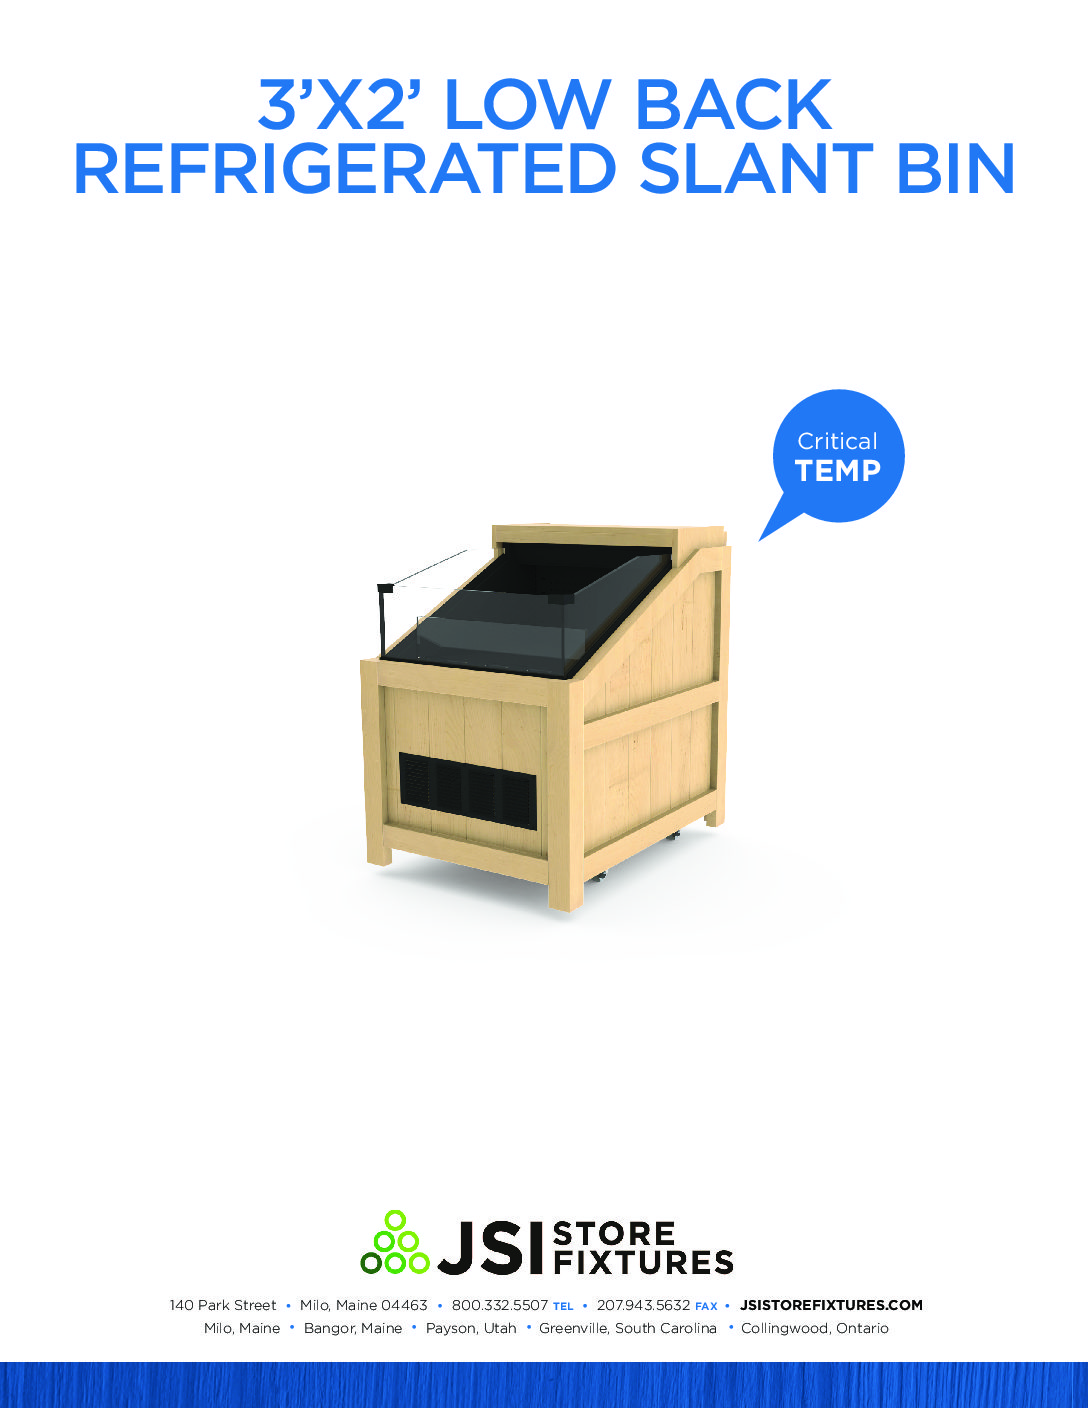 3'x2' Low Back Refrigerated Slant Bin Spec Sheet